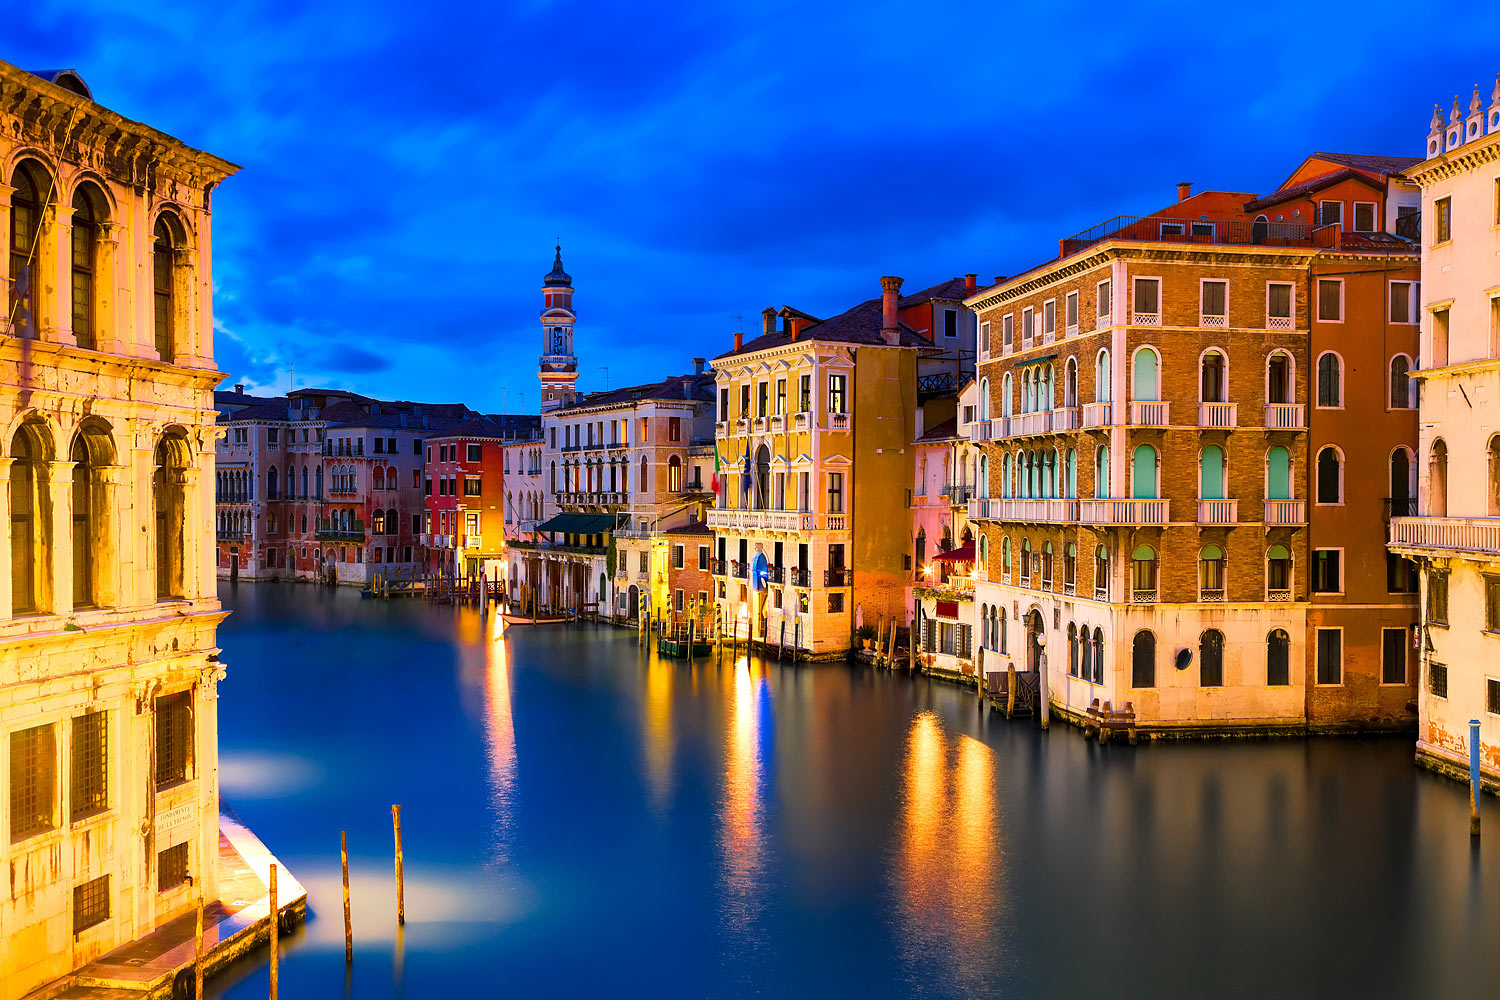 The Grand Canal in Venice, Italy in the evening